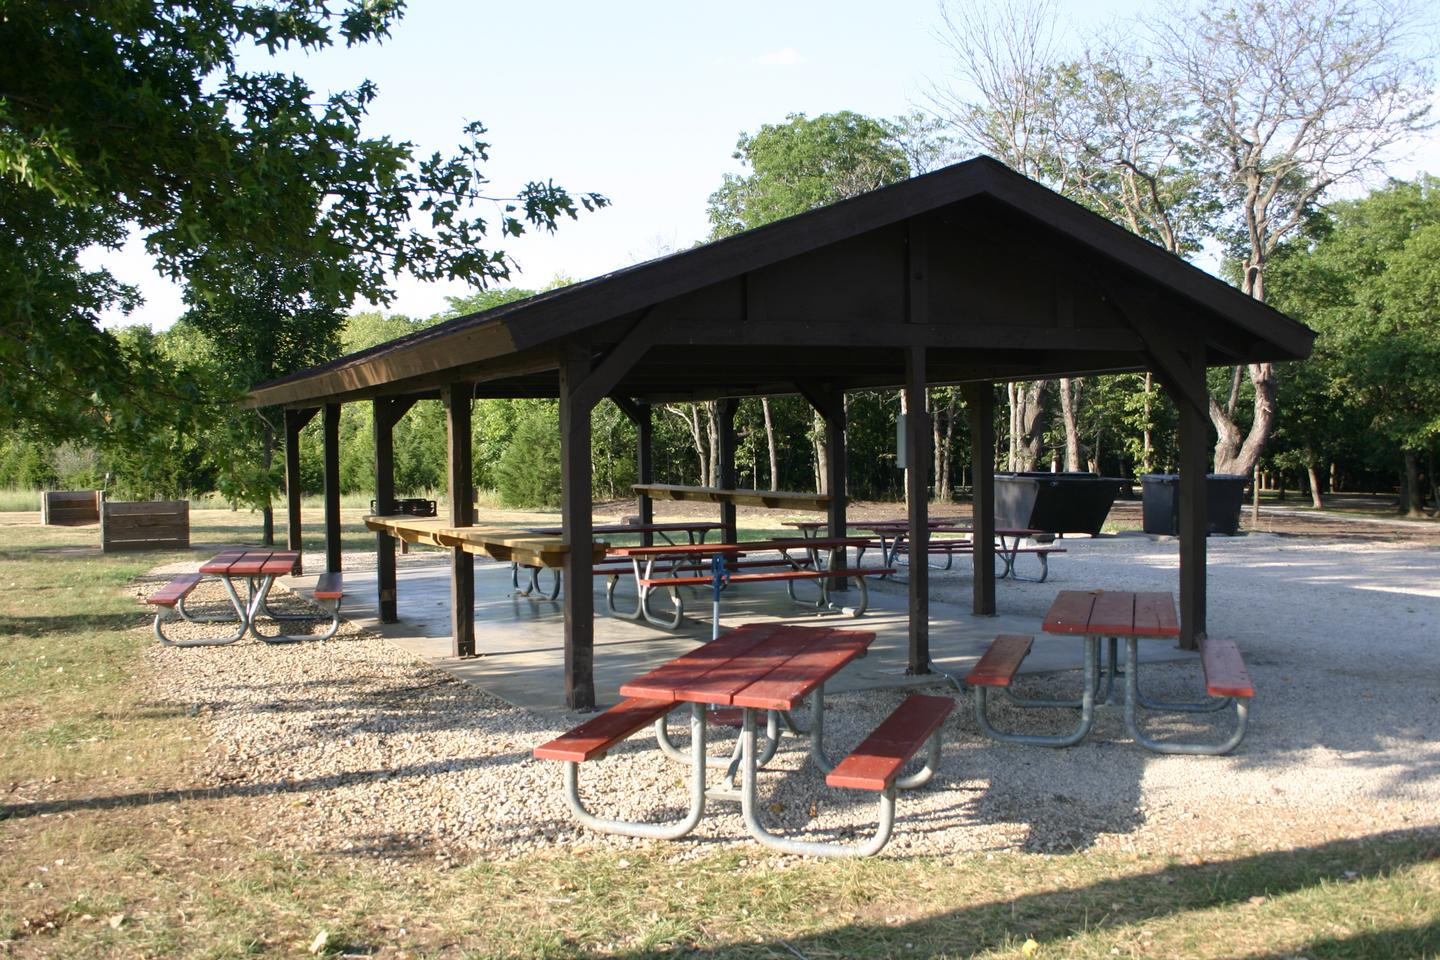 Bloomington West Park Campground sheltera shelter and numerous picnic tables are located within the Bloomington West campground